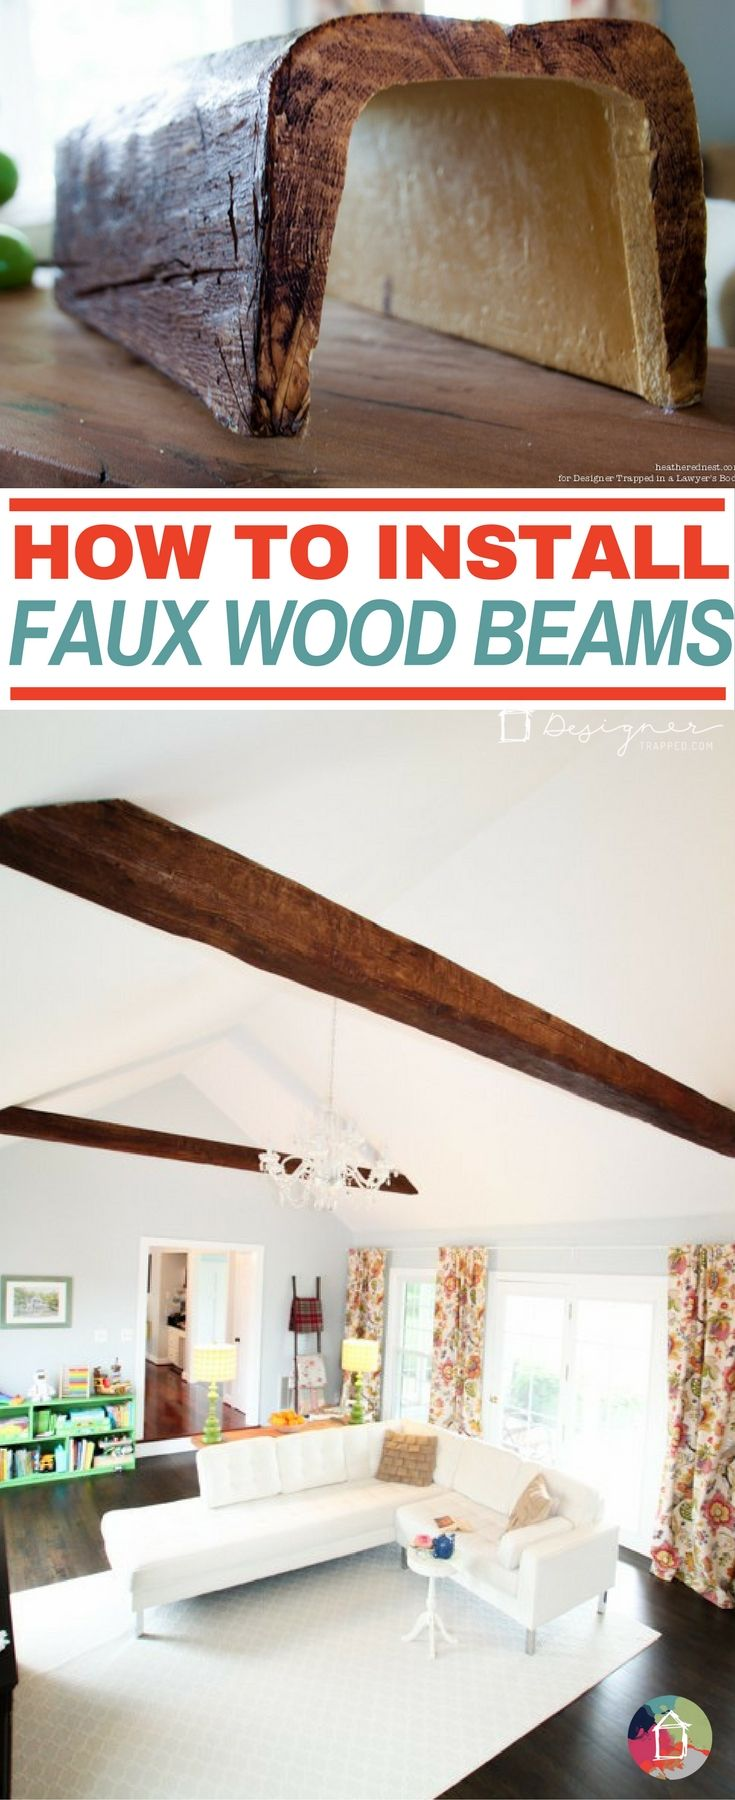 AH-MAZING! Learn how to install faux wood beams. They are affordable and STUNNING.